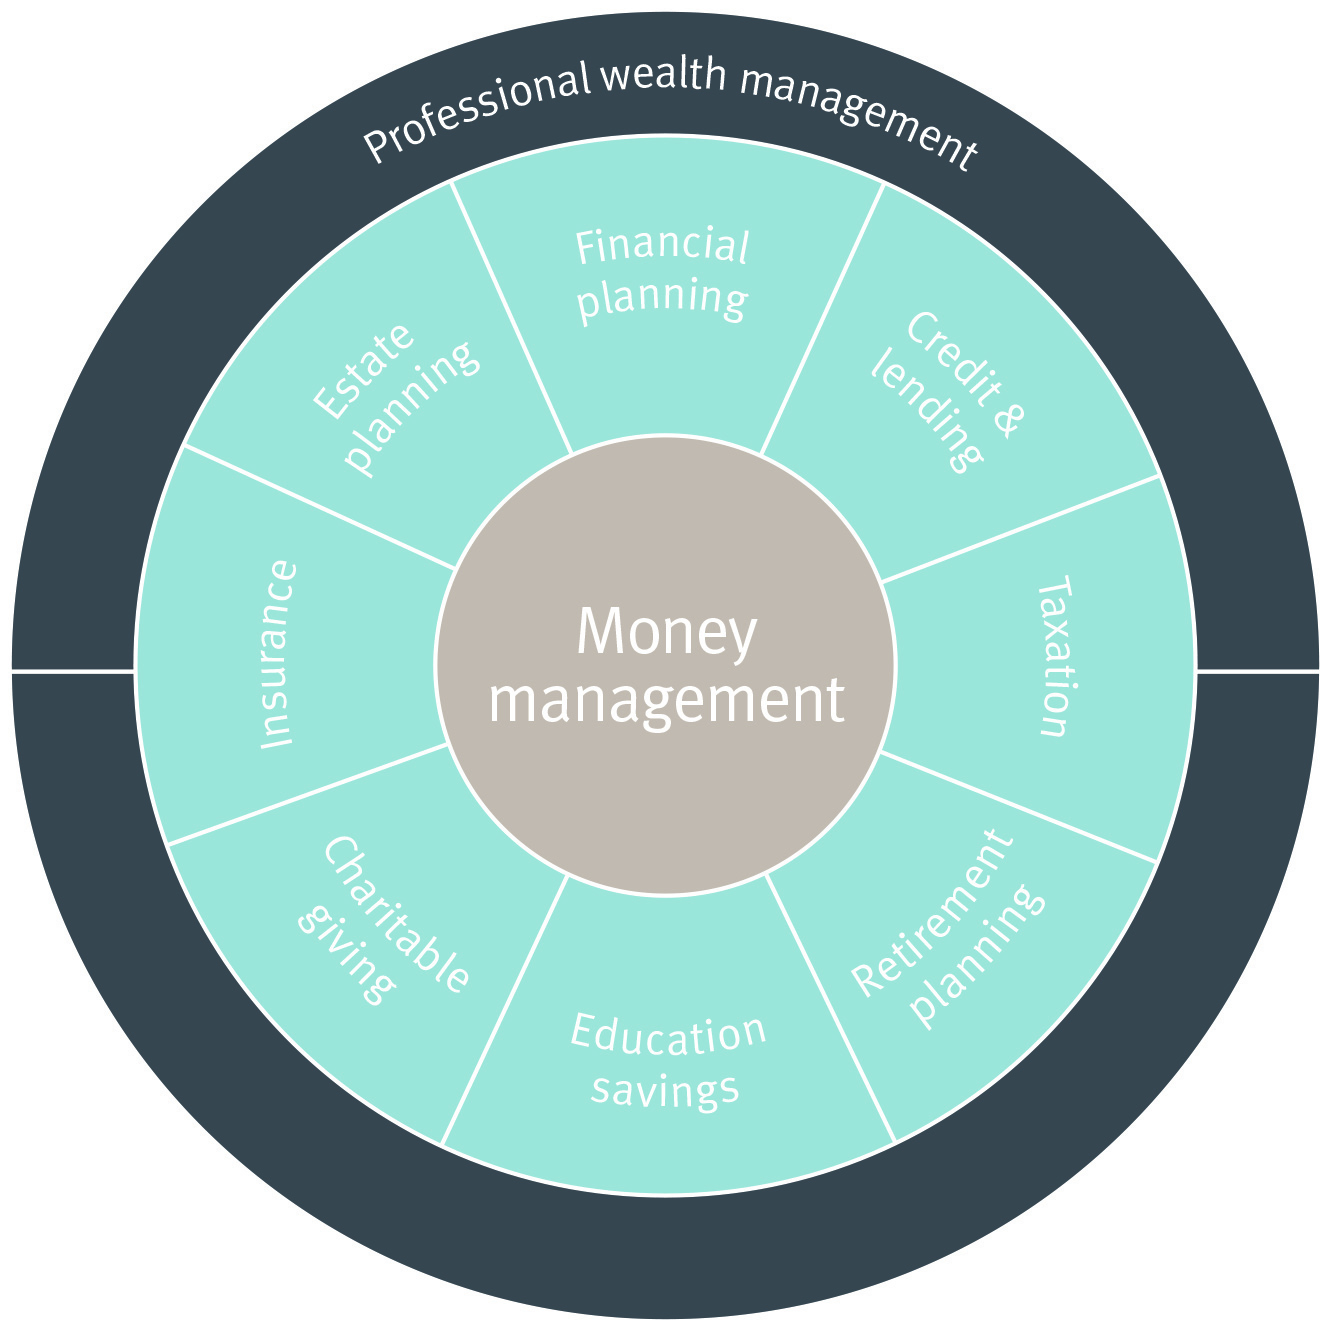 rich long home every step of the way you are guided by a professional wealth manager rich long who will help you realize your personal aspirations